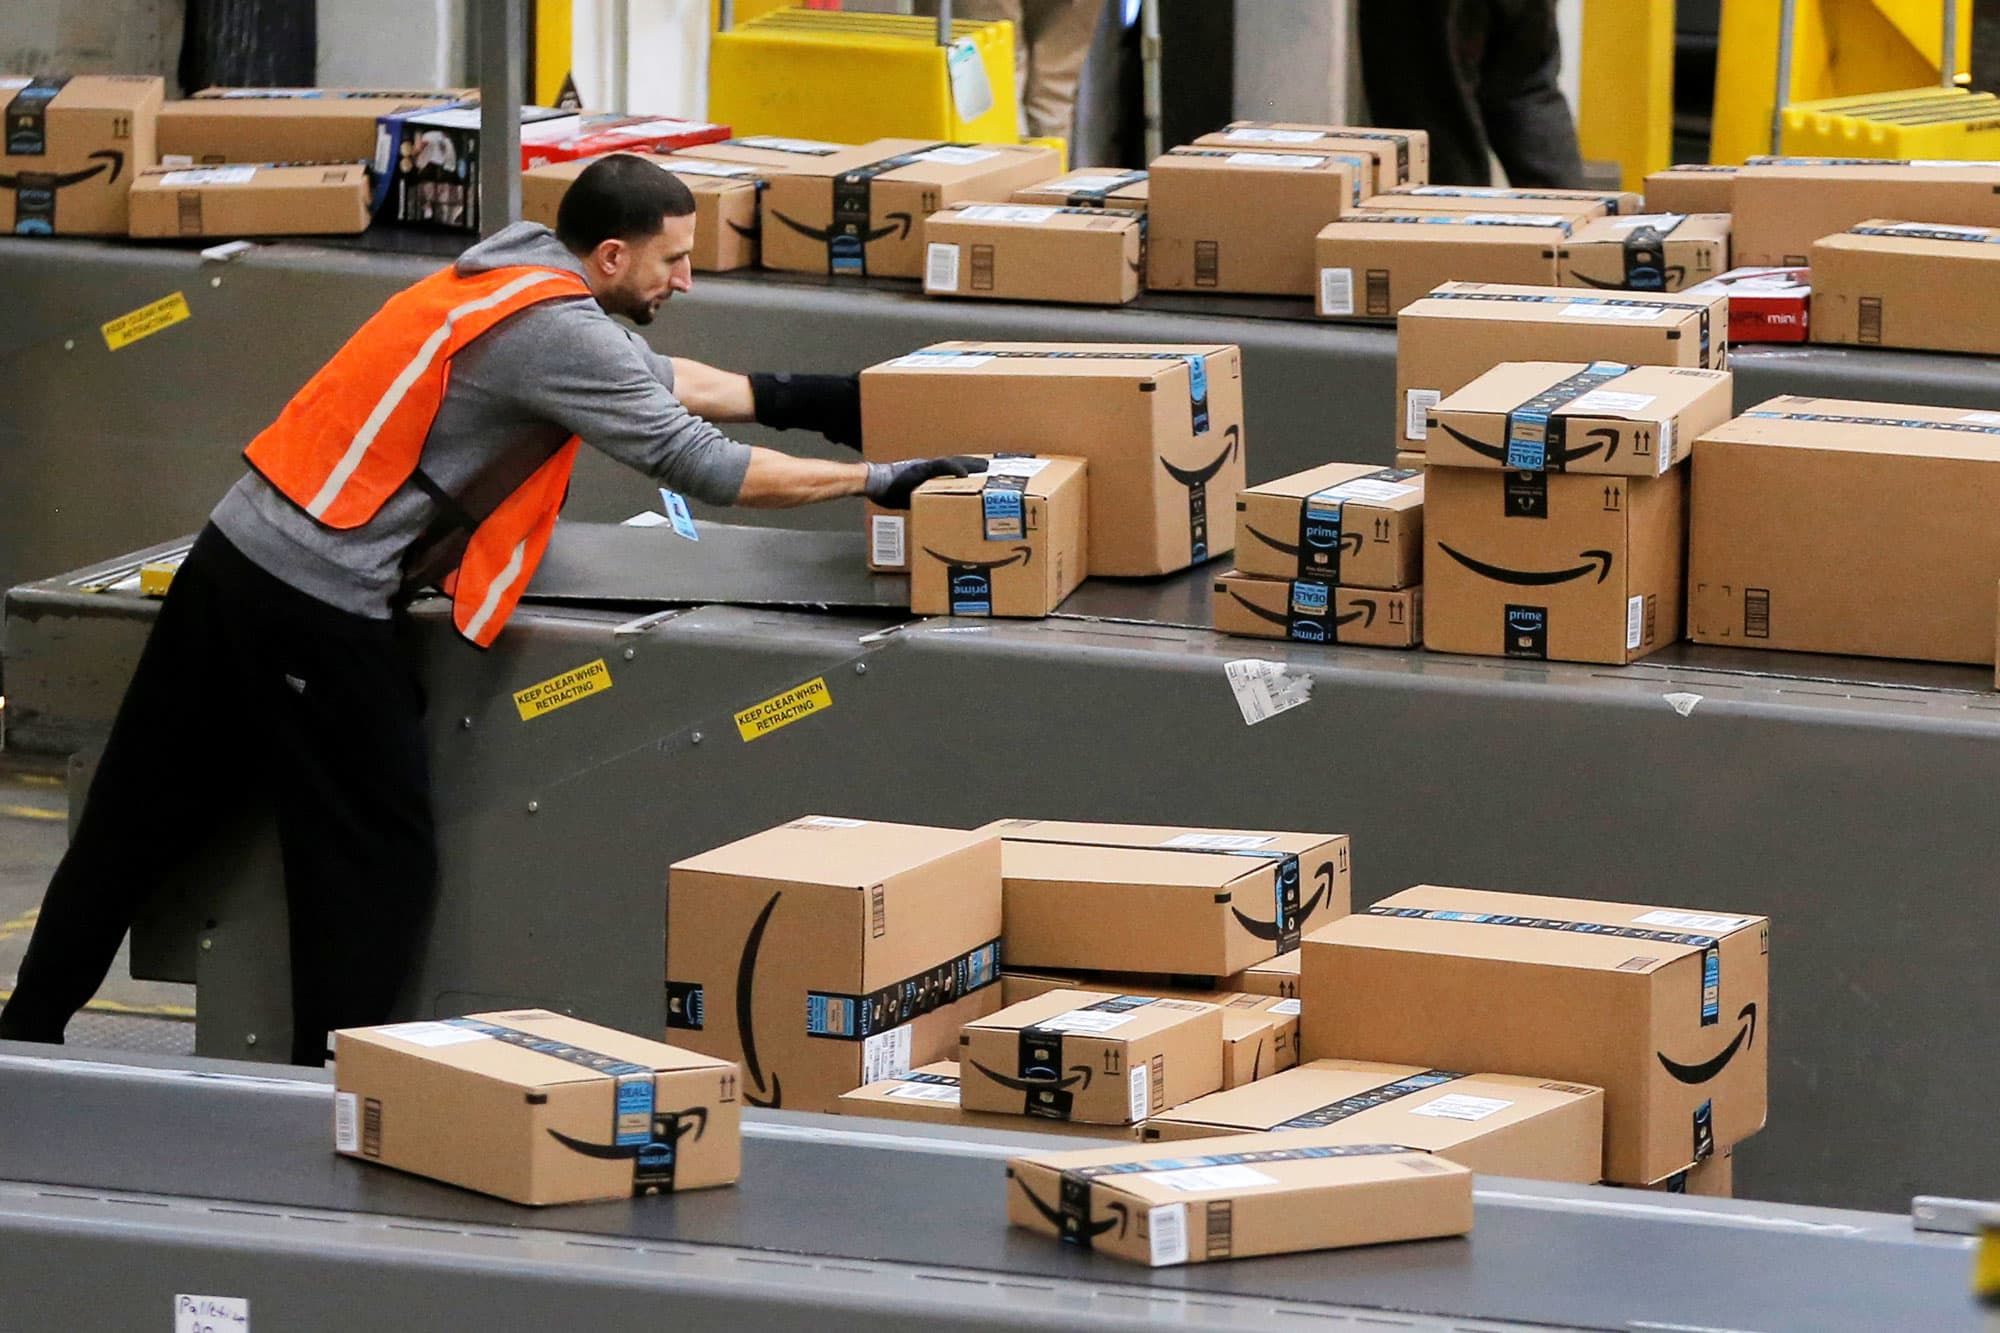 Amazon Prime Now suffers delays amid coronavirus outbreak